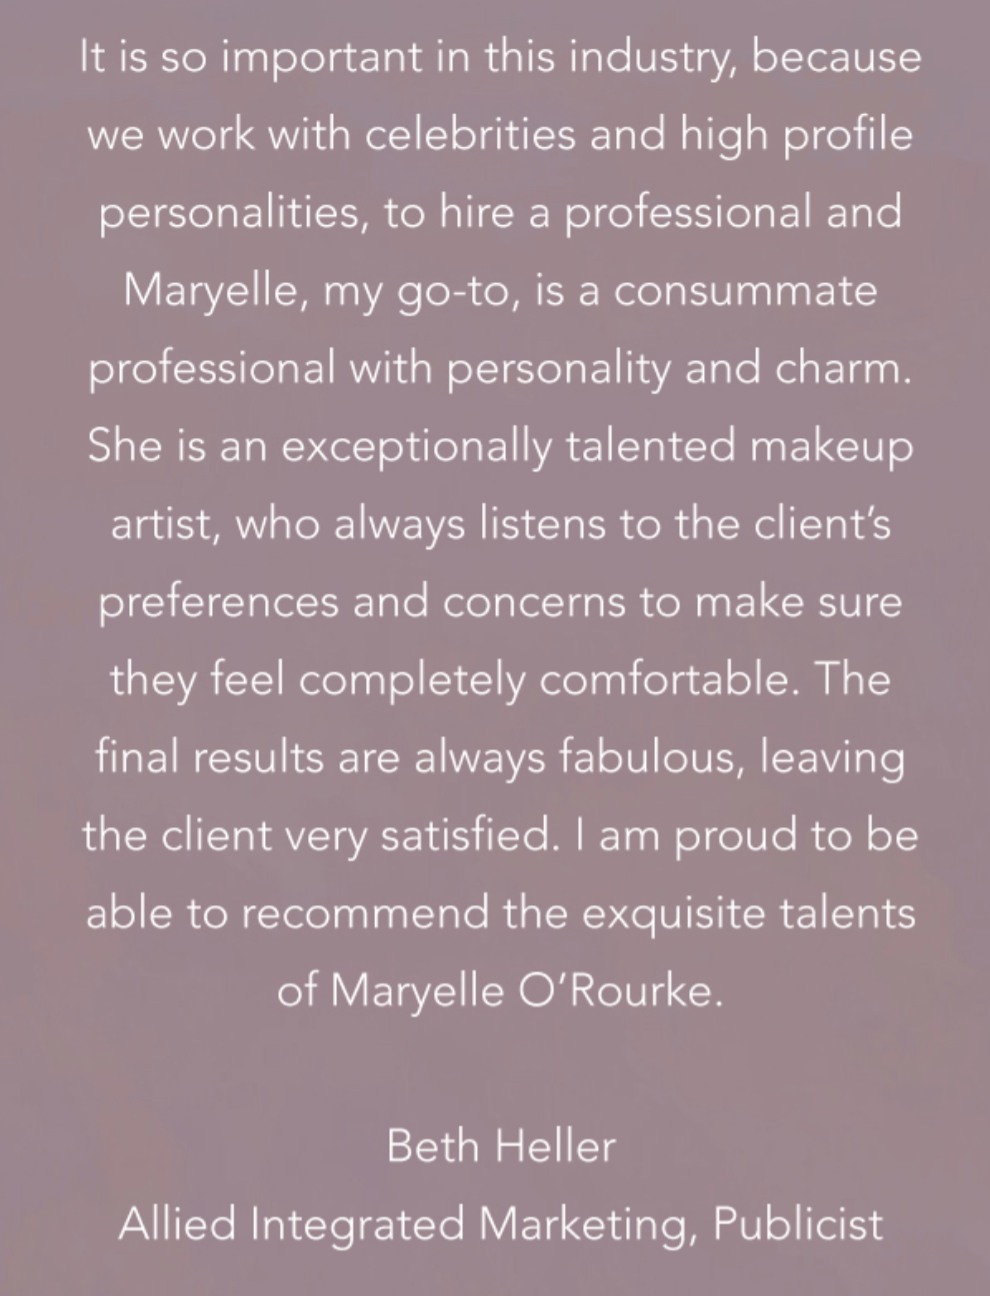 Testimonial from Beth Heller, Allied Integrated Marketing